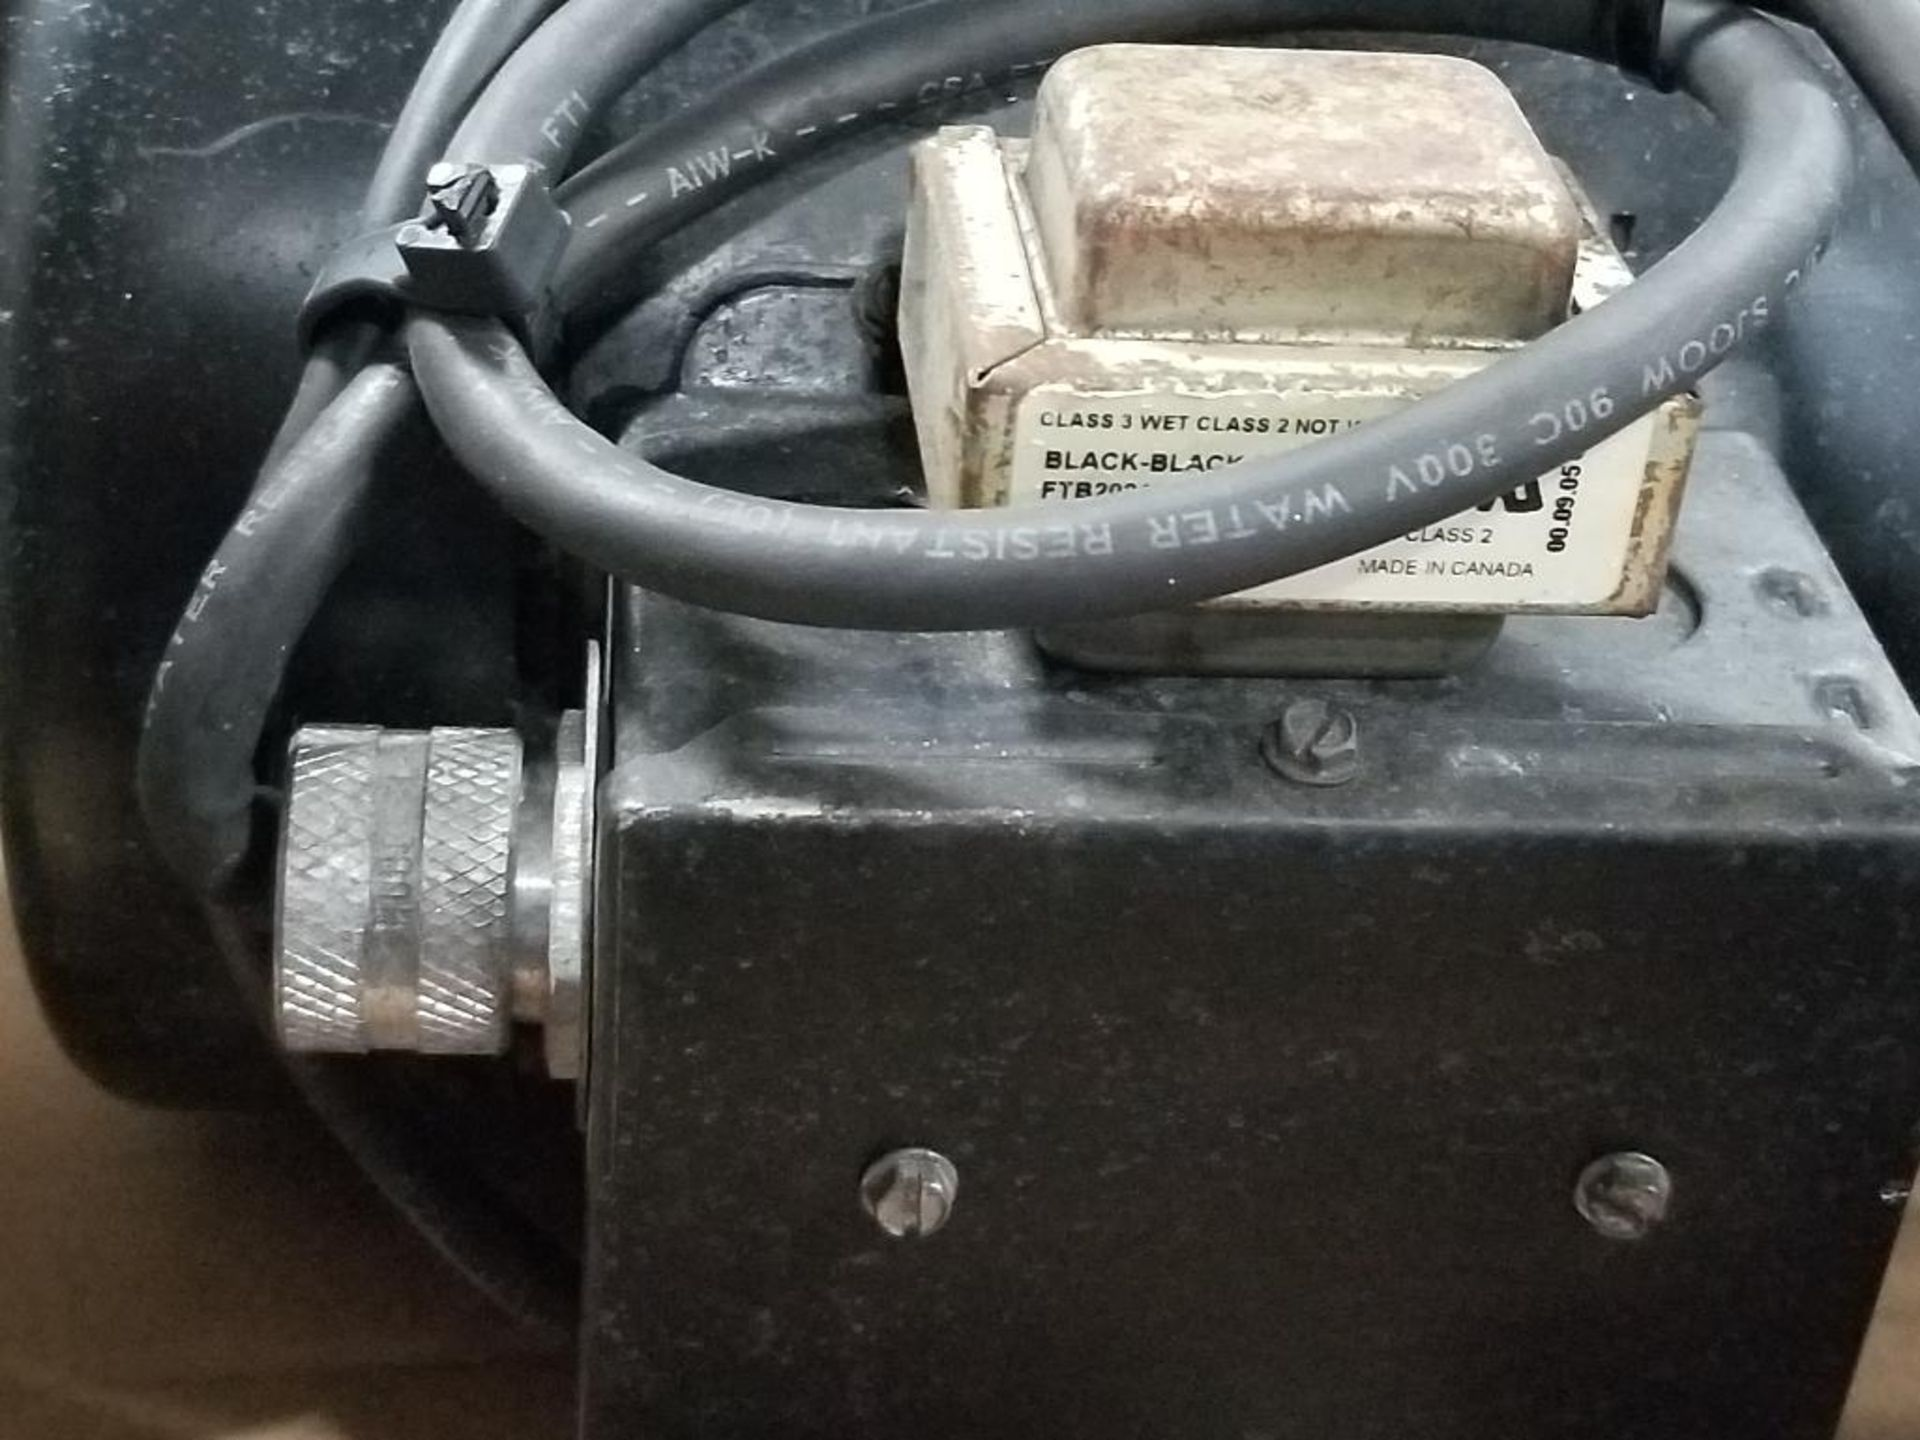 1/2HP Fenner Emerson 2975-BC pump motor. 1PH, 115/208-230V, 1725RPM. XE56CZ-Frame. - Image 2 of 5